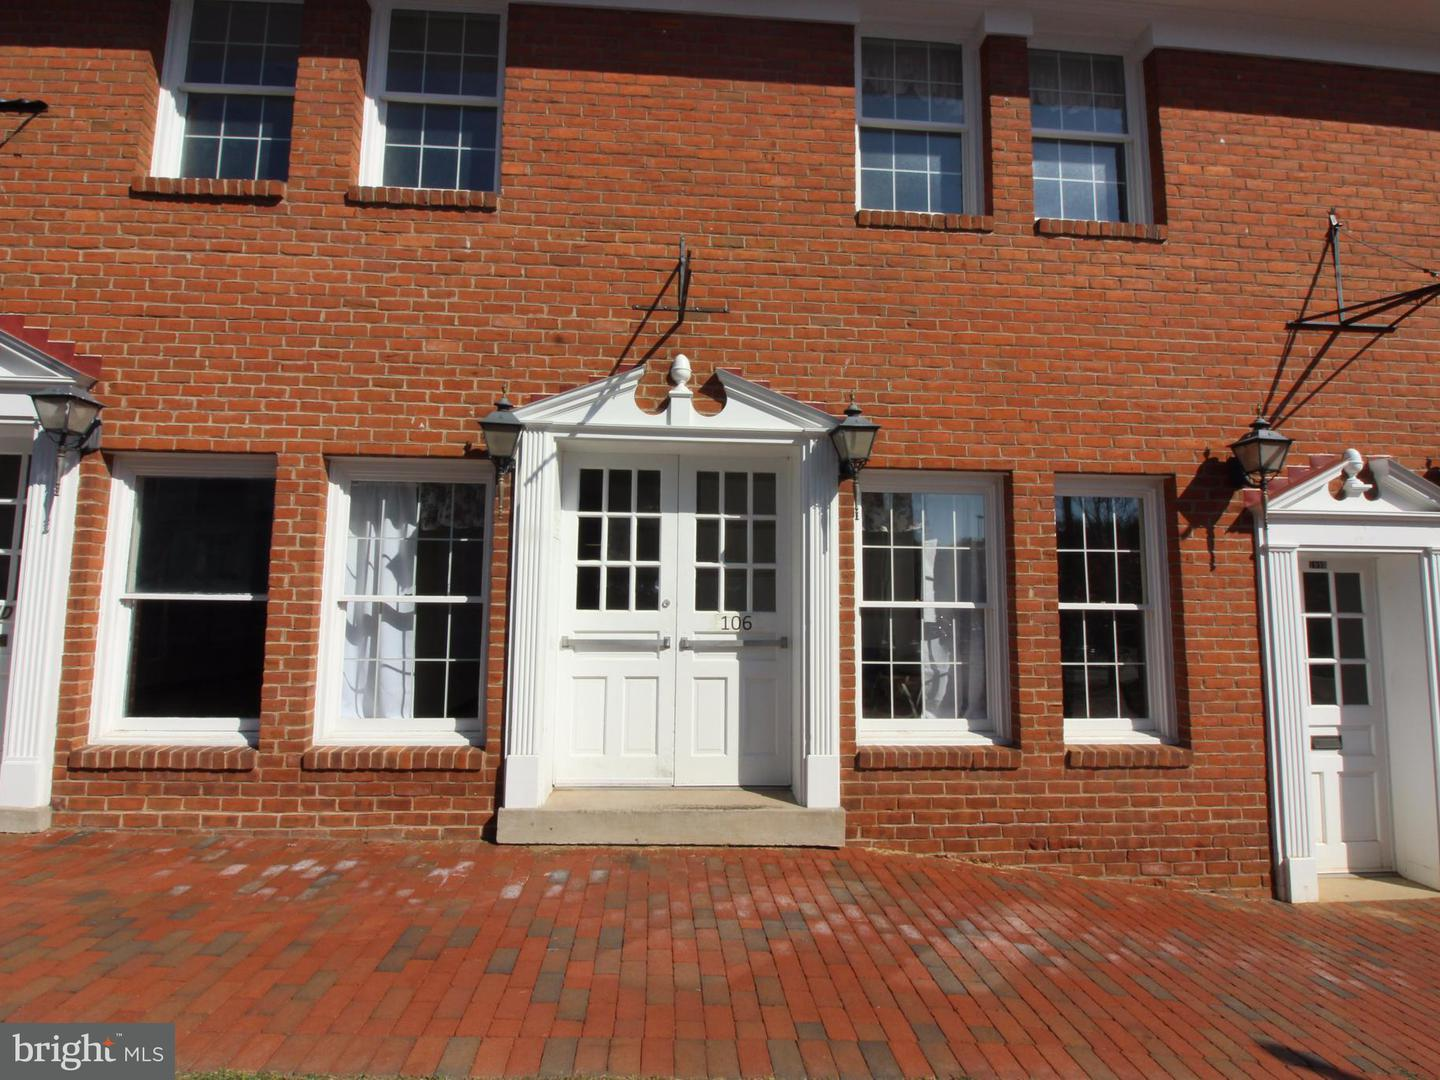 Other Residential for Rent at 106 Main St Woodstock, Virginia 22664 United States